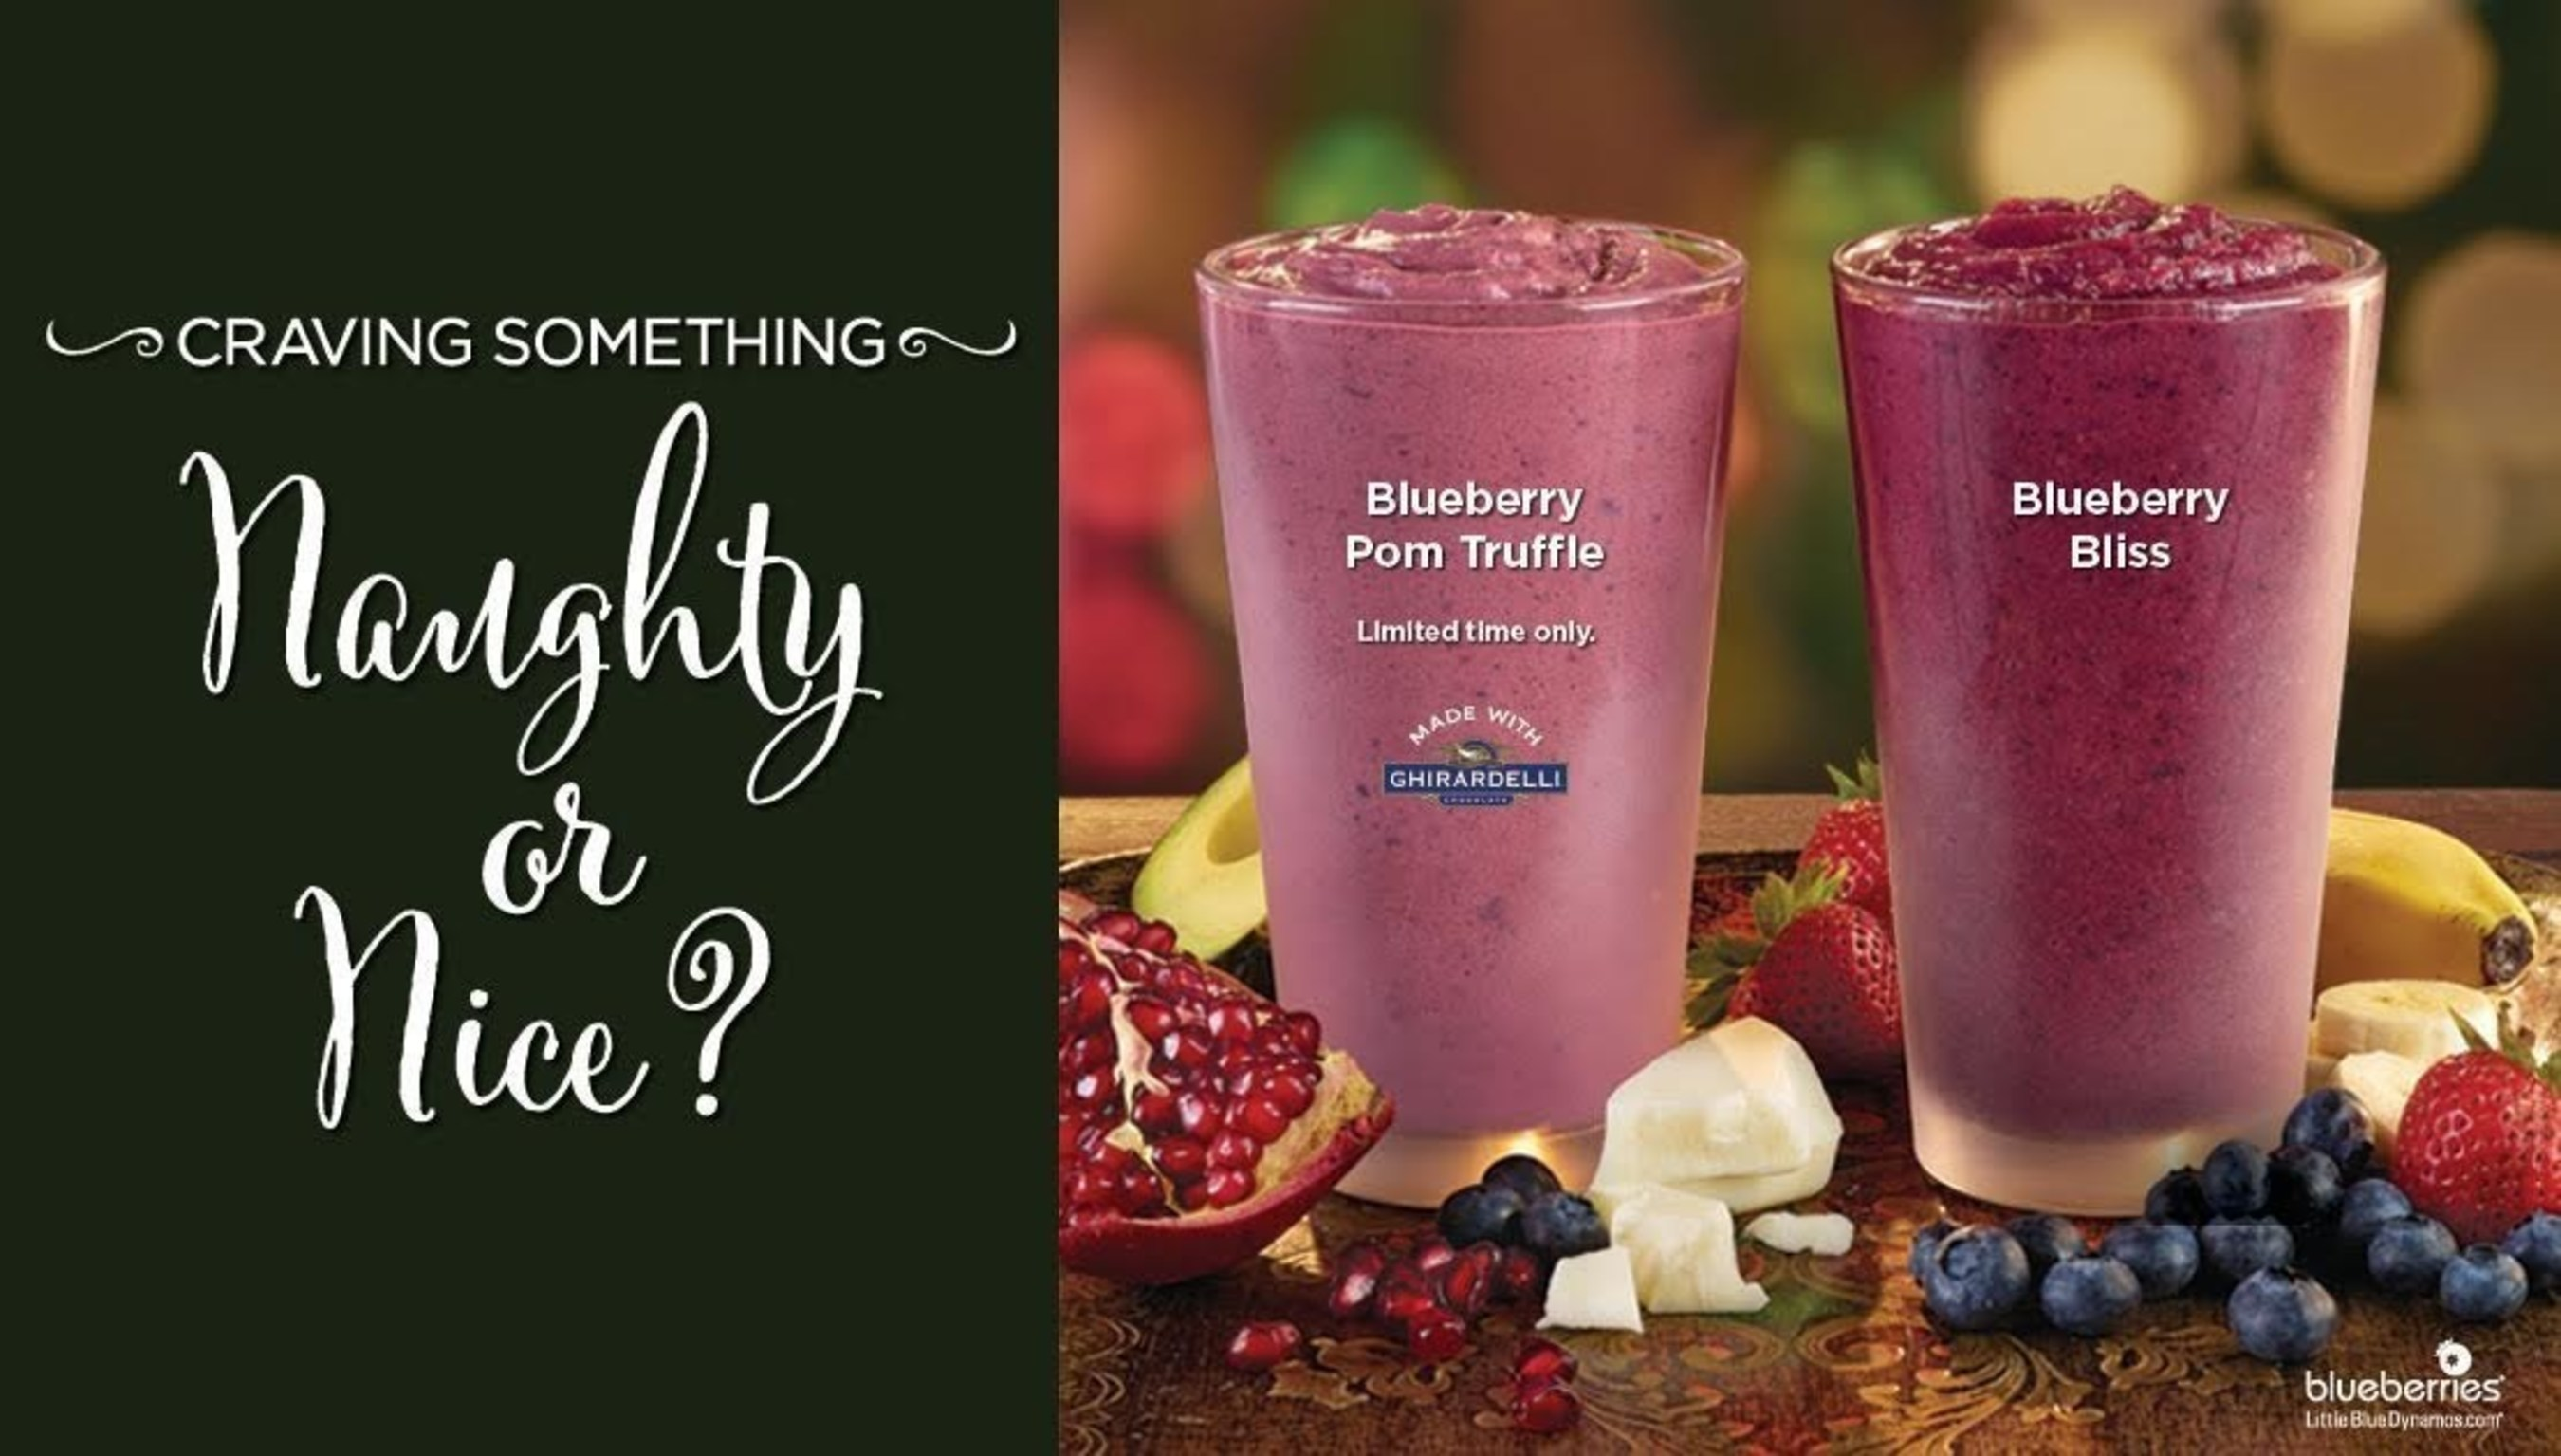 Holiday Smoothie Recipe Unveiled at Tropical Smoothie Cafe